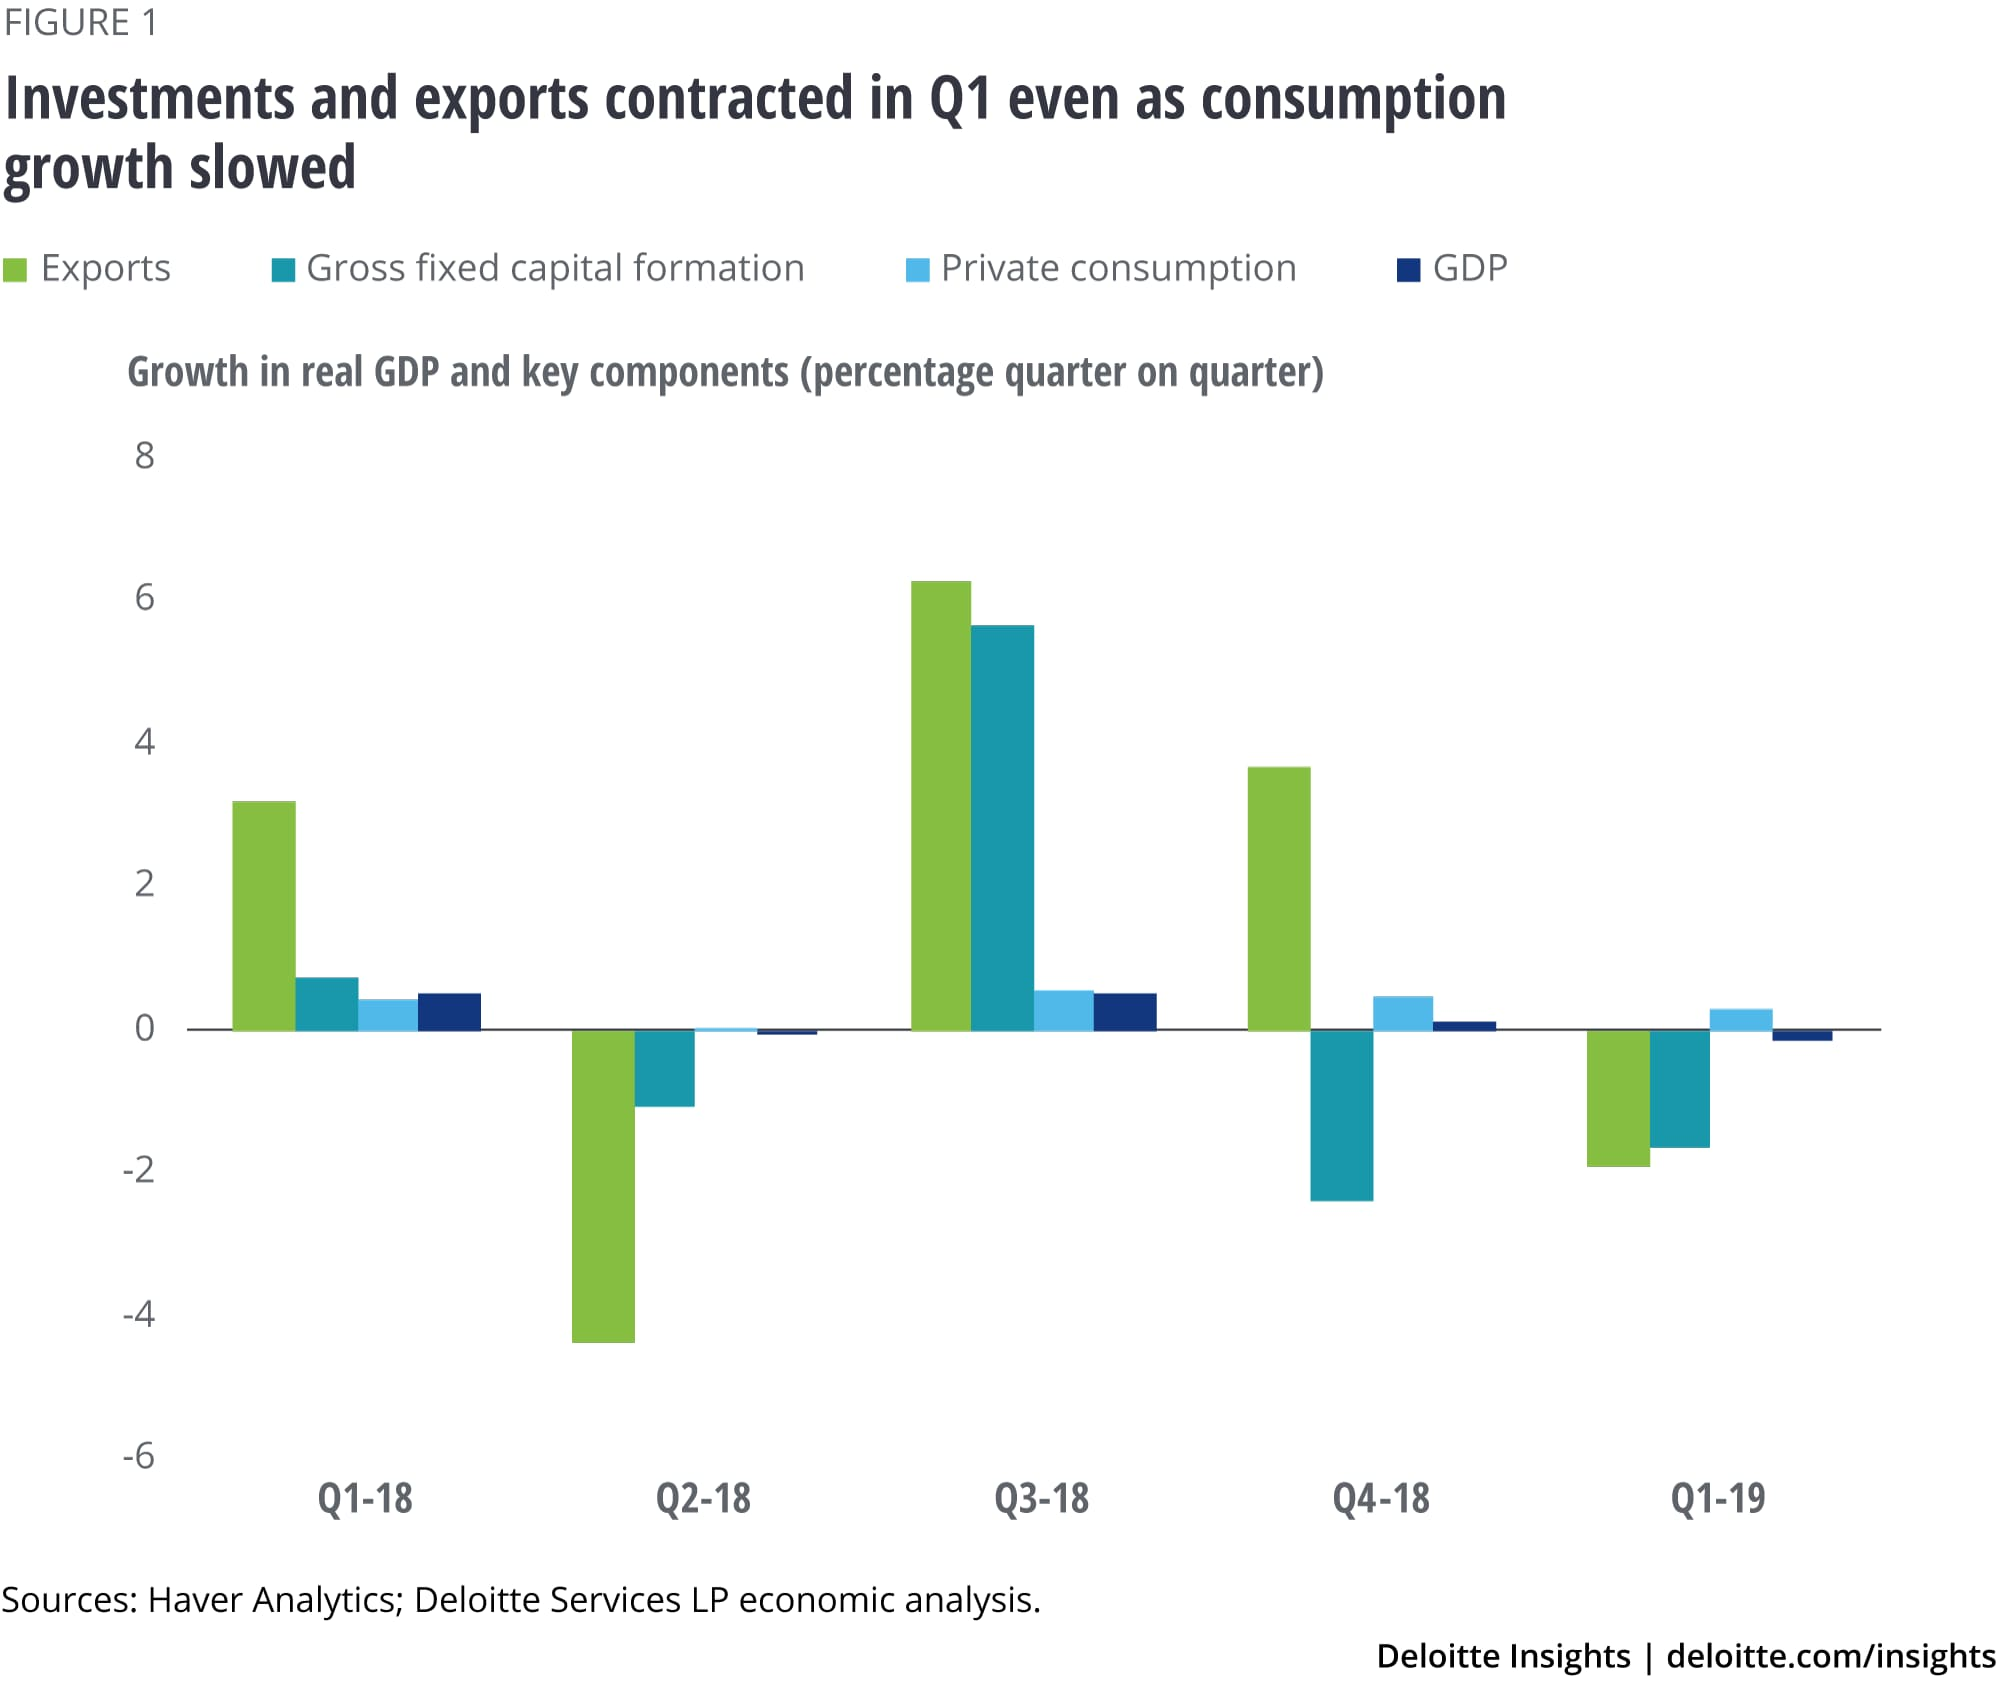 Investments and exports contracted in Q1 even as consumption growth slowed